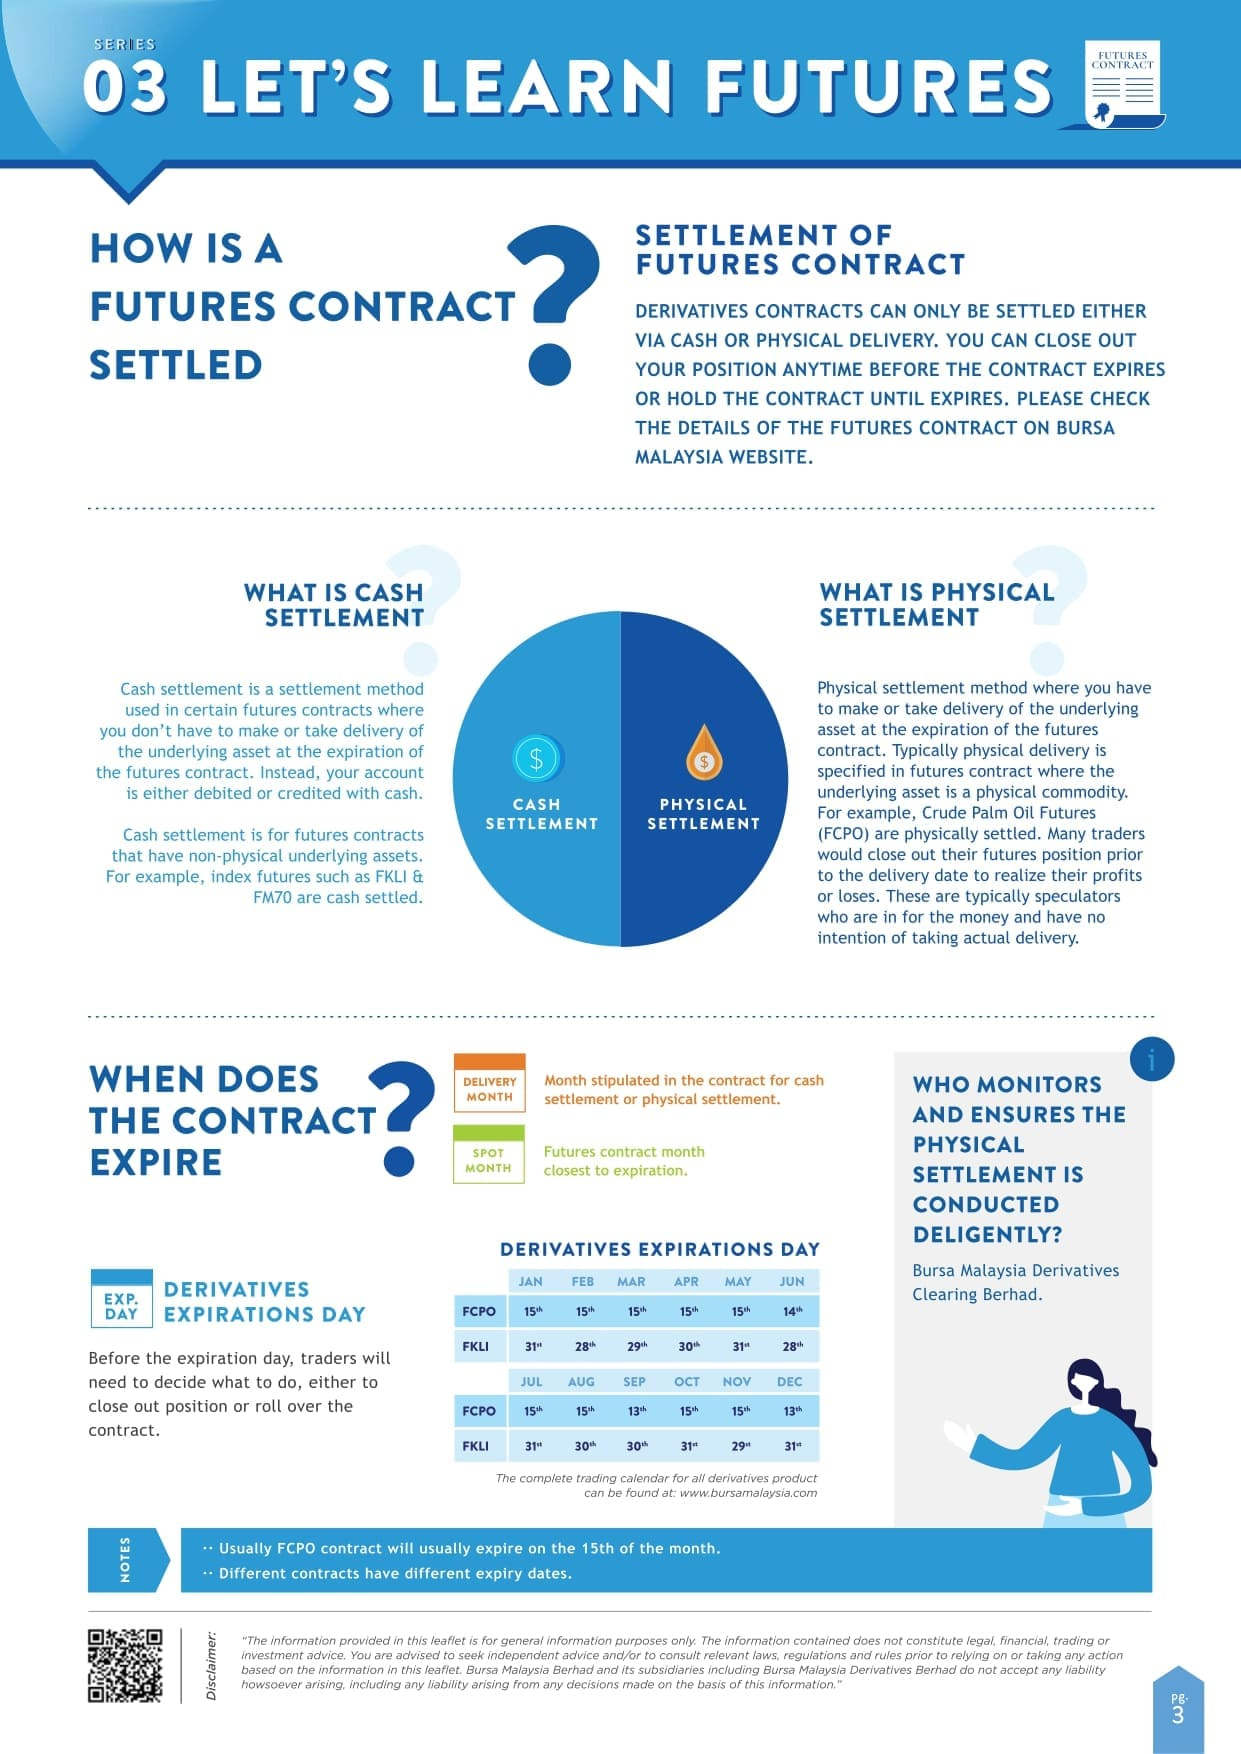 Let's Learn Futures – Infographic Series 03